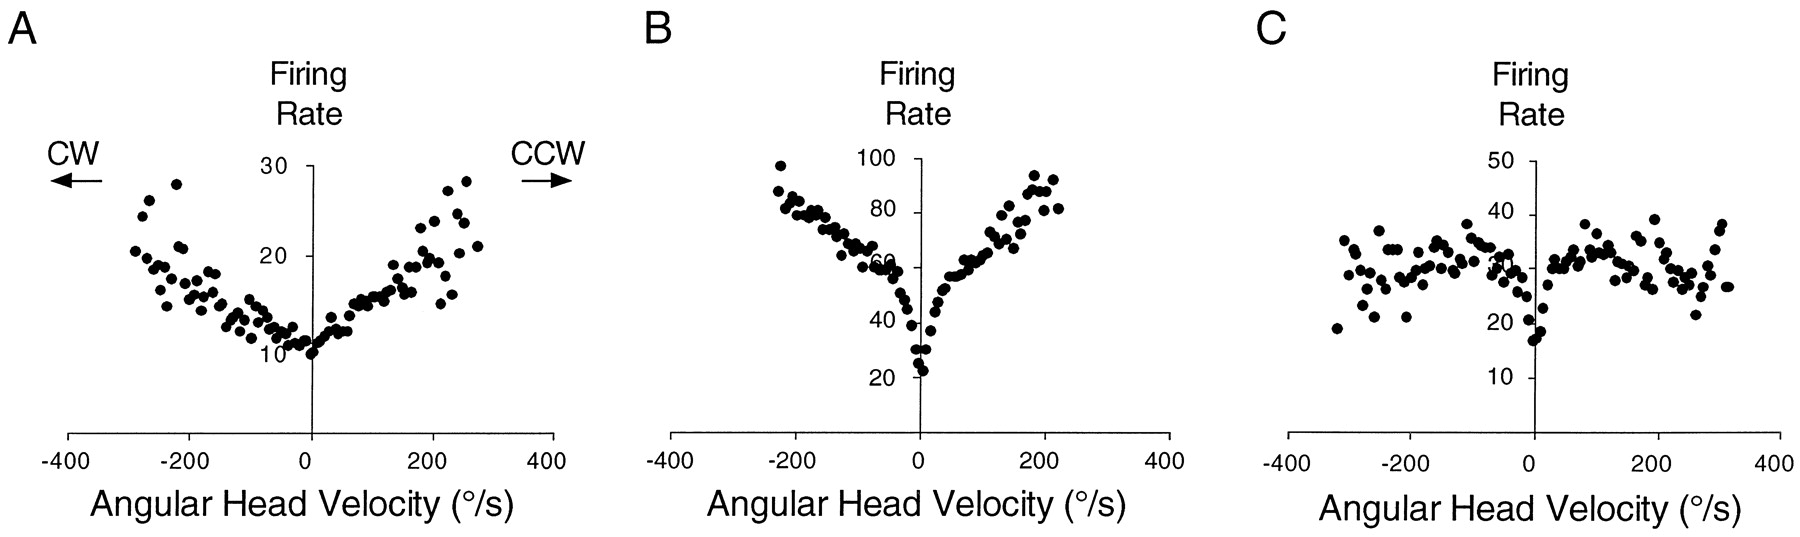 Neural Correlates for Angular Head Velocity in the Rat Dorsal